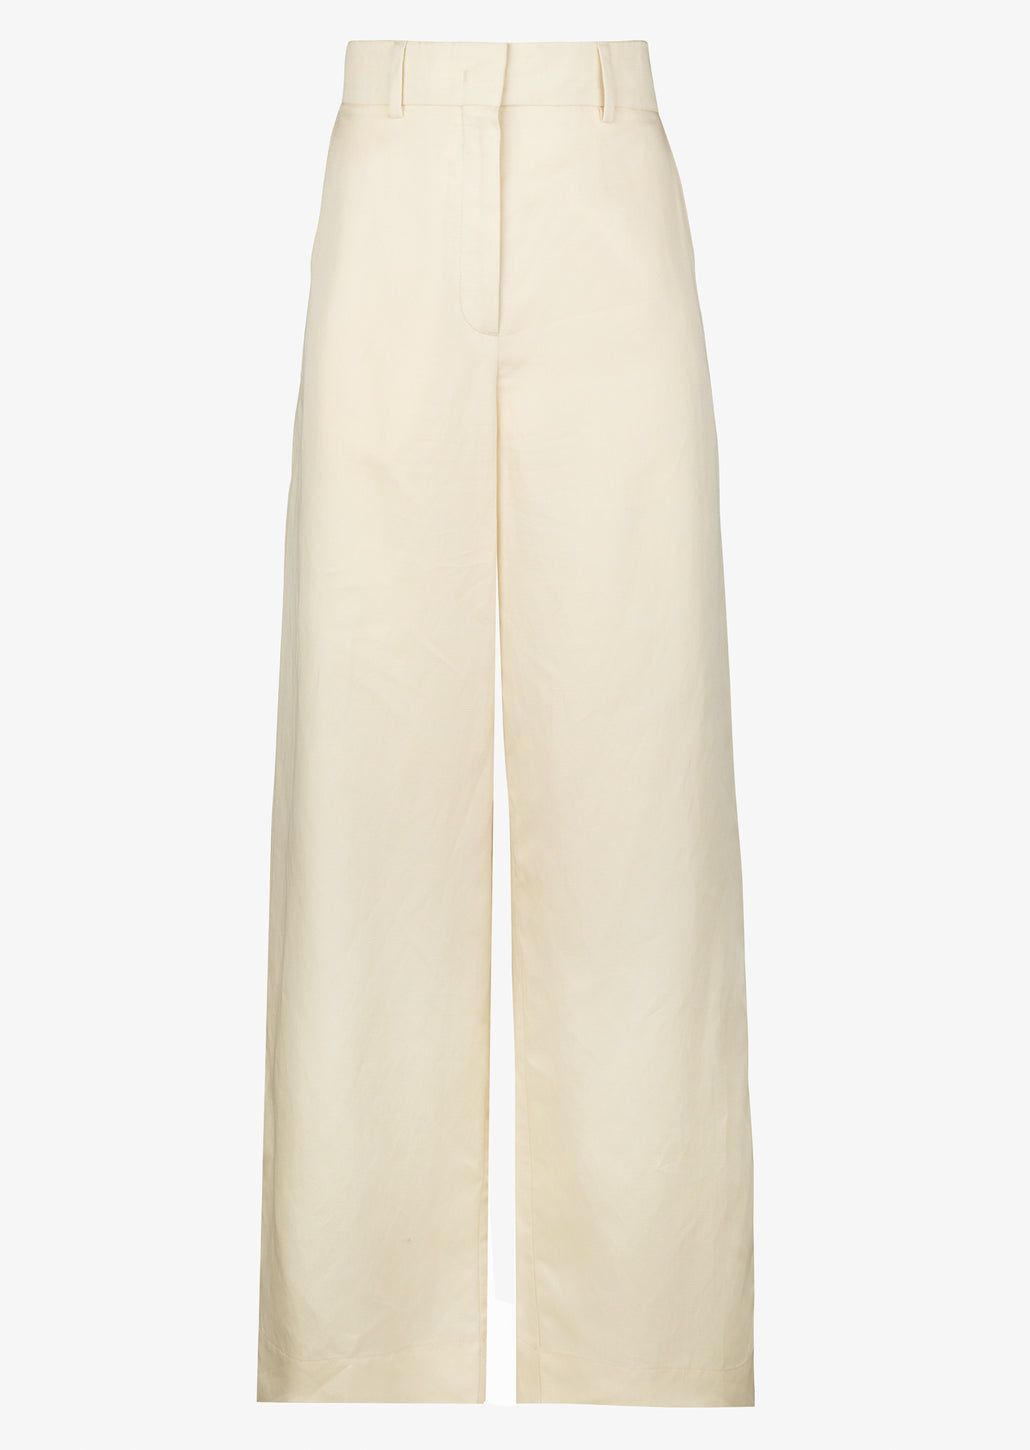 Linnen wide leg dames broek in beige